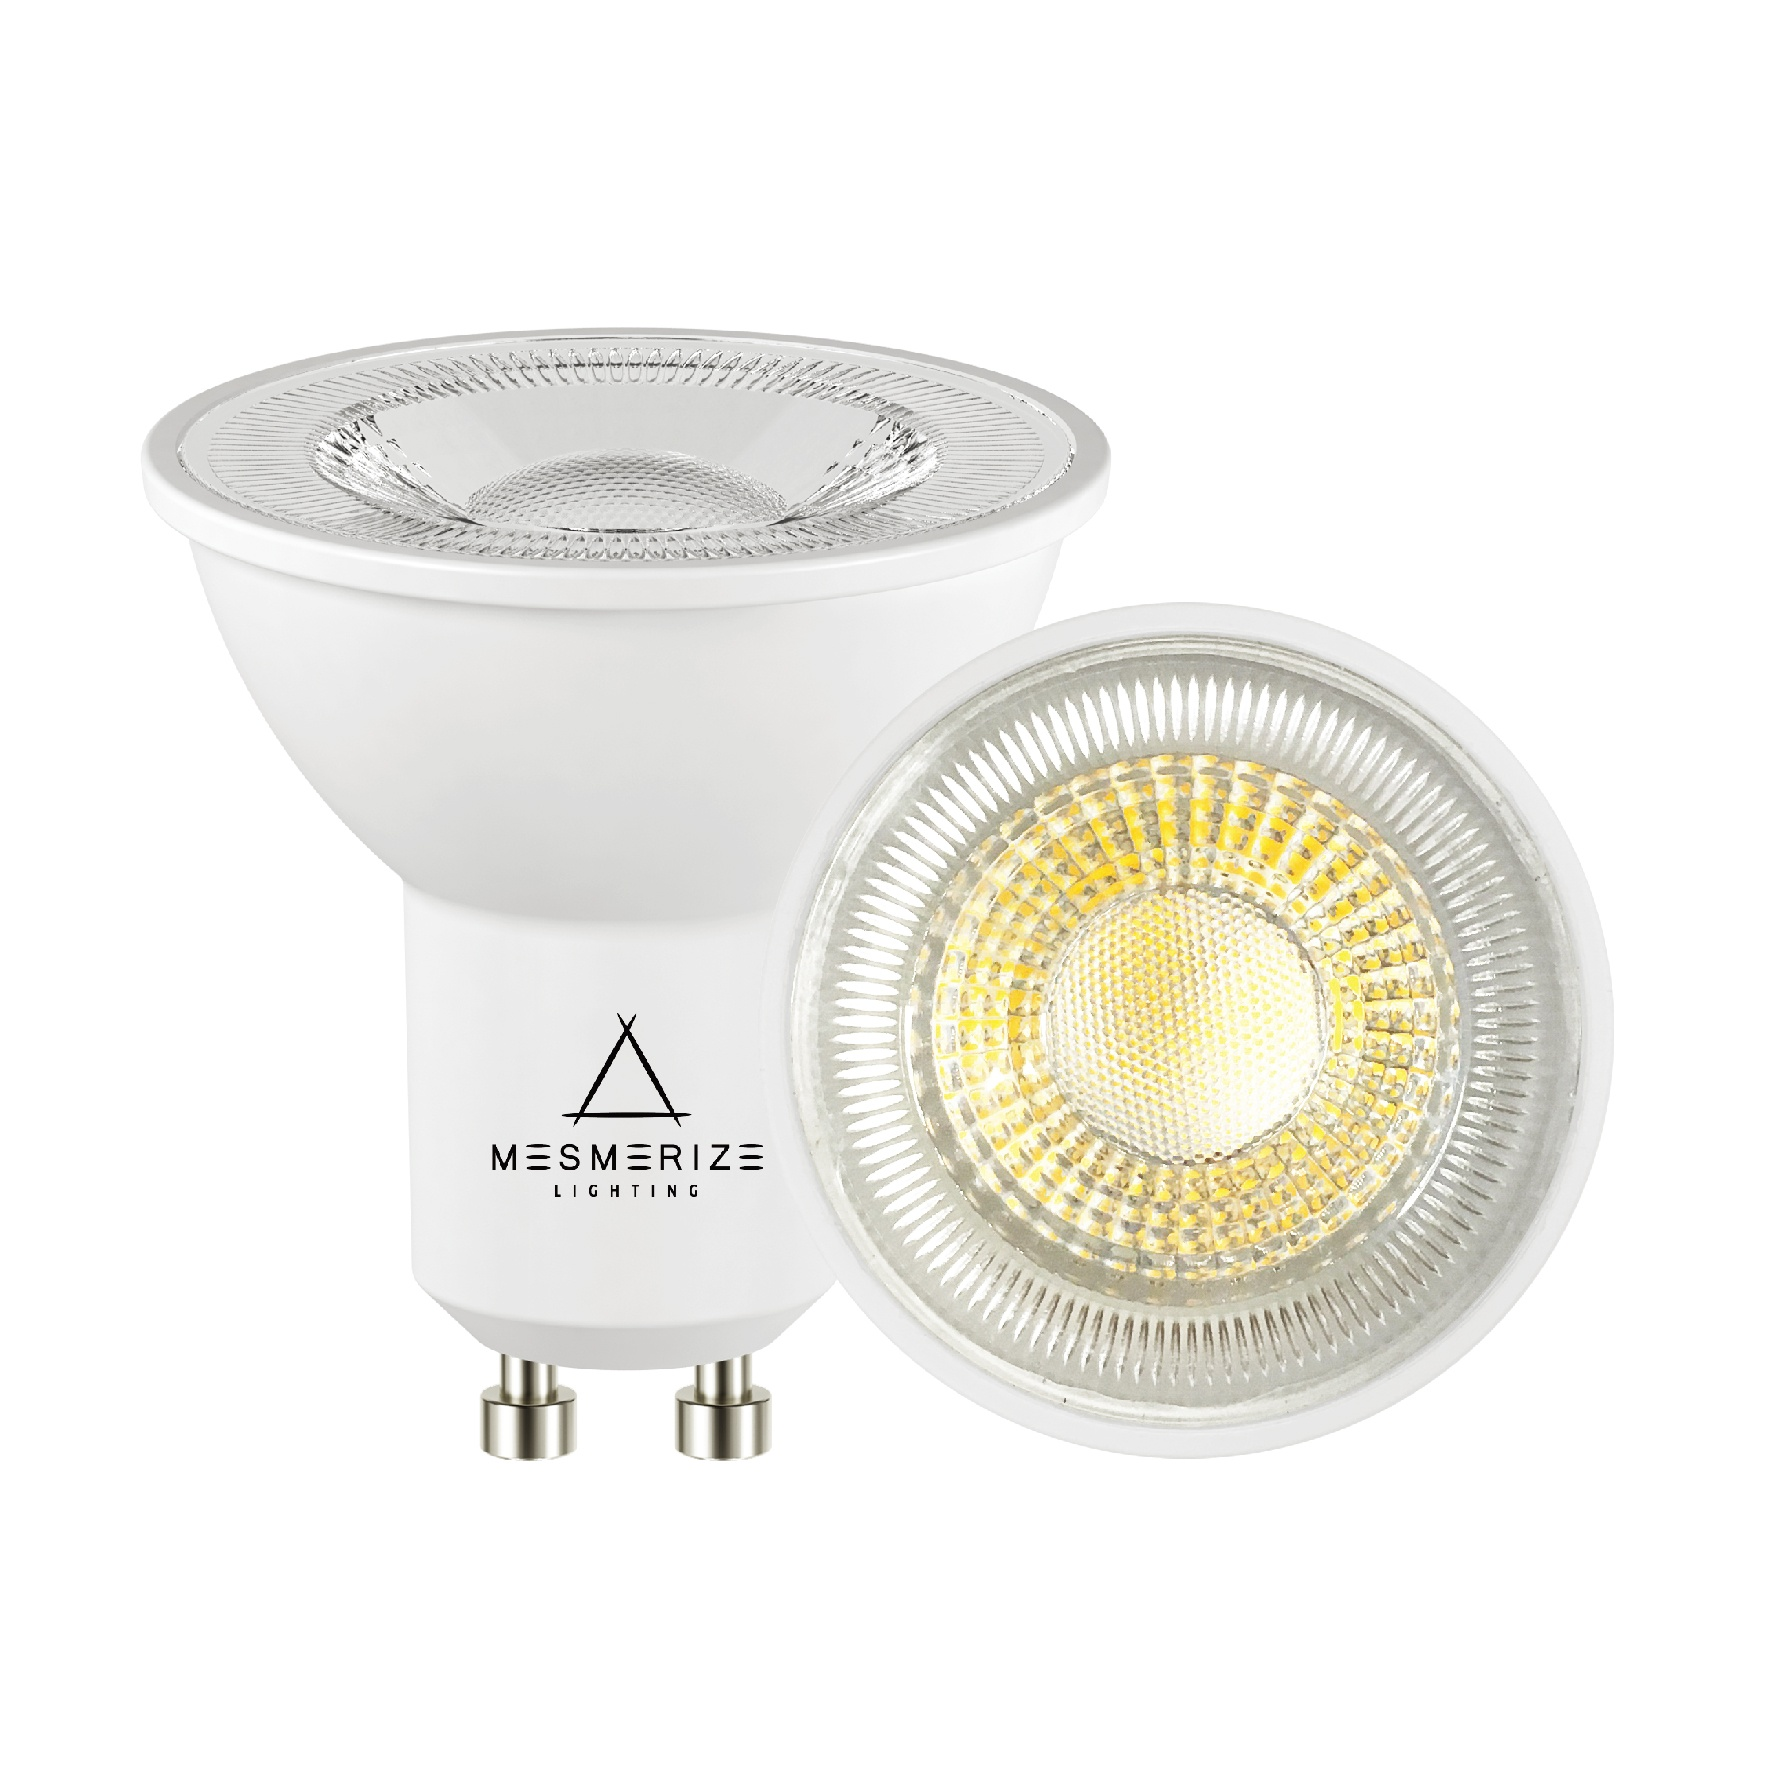 MESMERIZE DOWNLIGHT GU10 LED COMET 7.5W 4000K NATURAL WHITE DIMMABLE 740LM